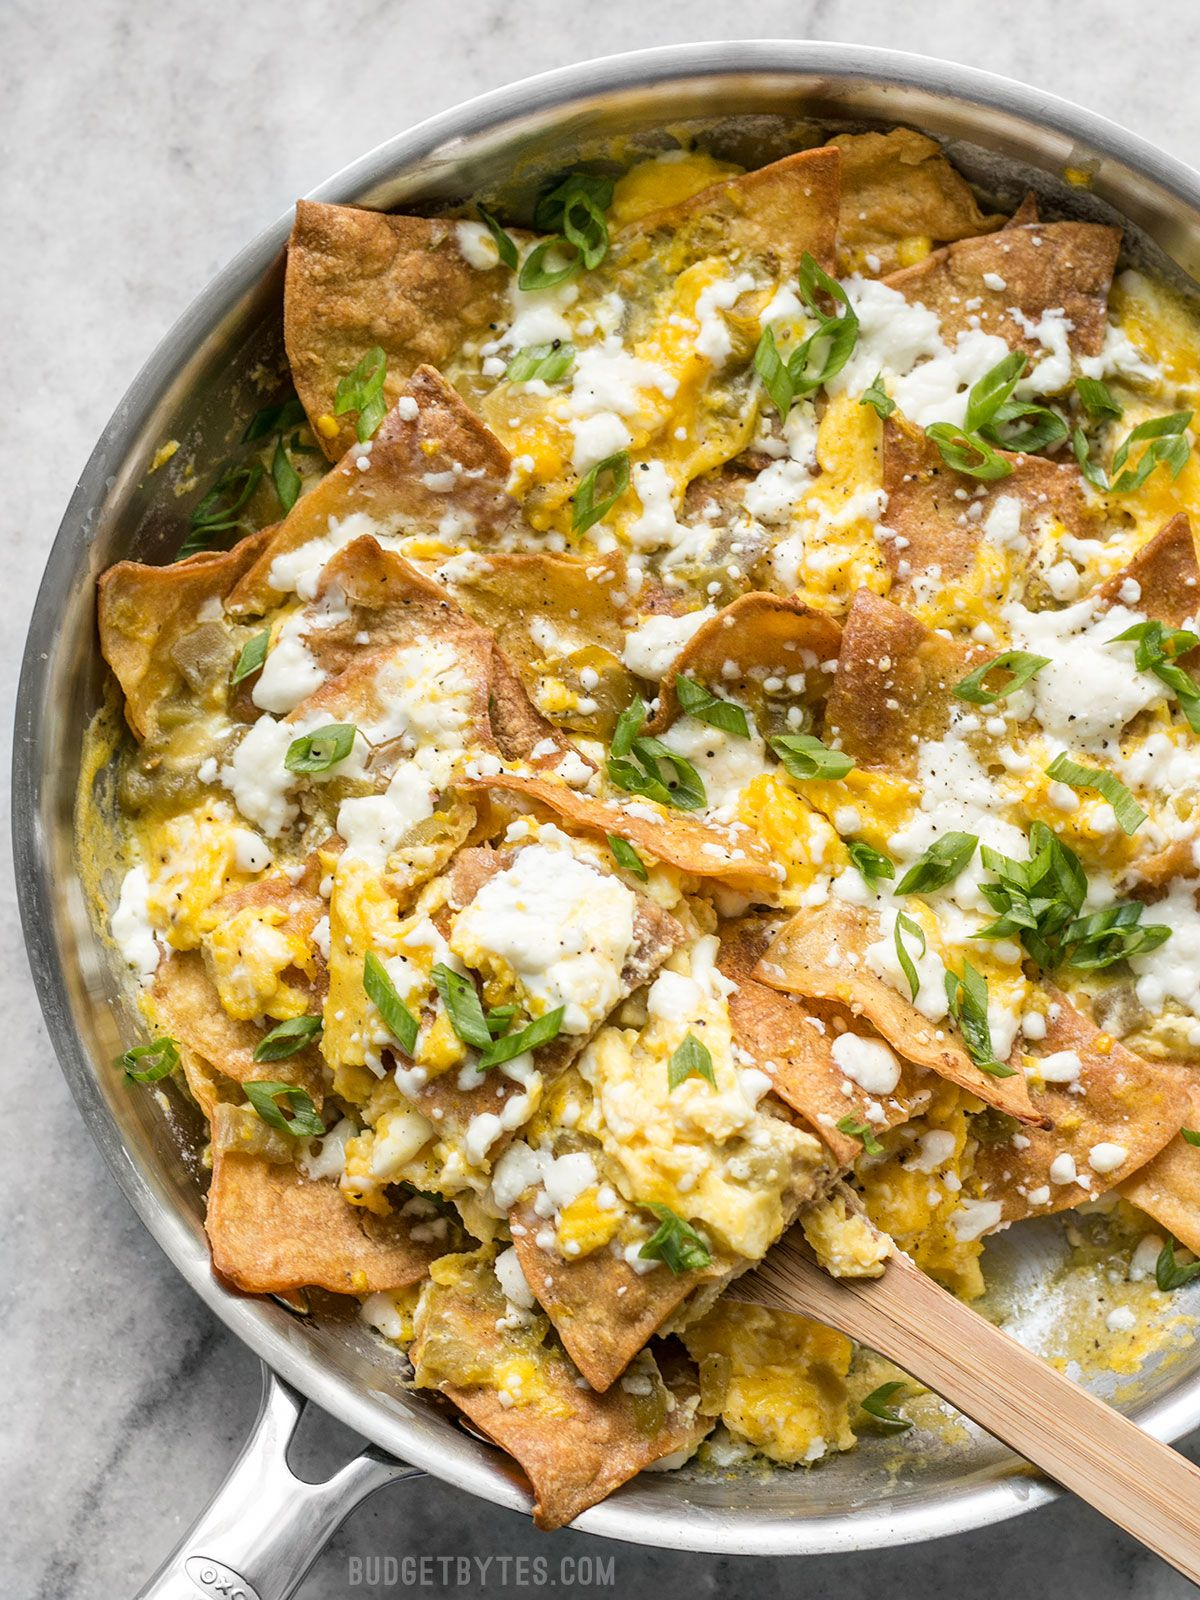 Green Chile Migas - Easy Breakfast or Brunch - Bud